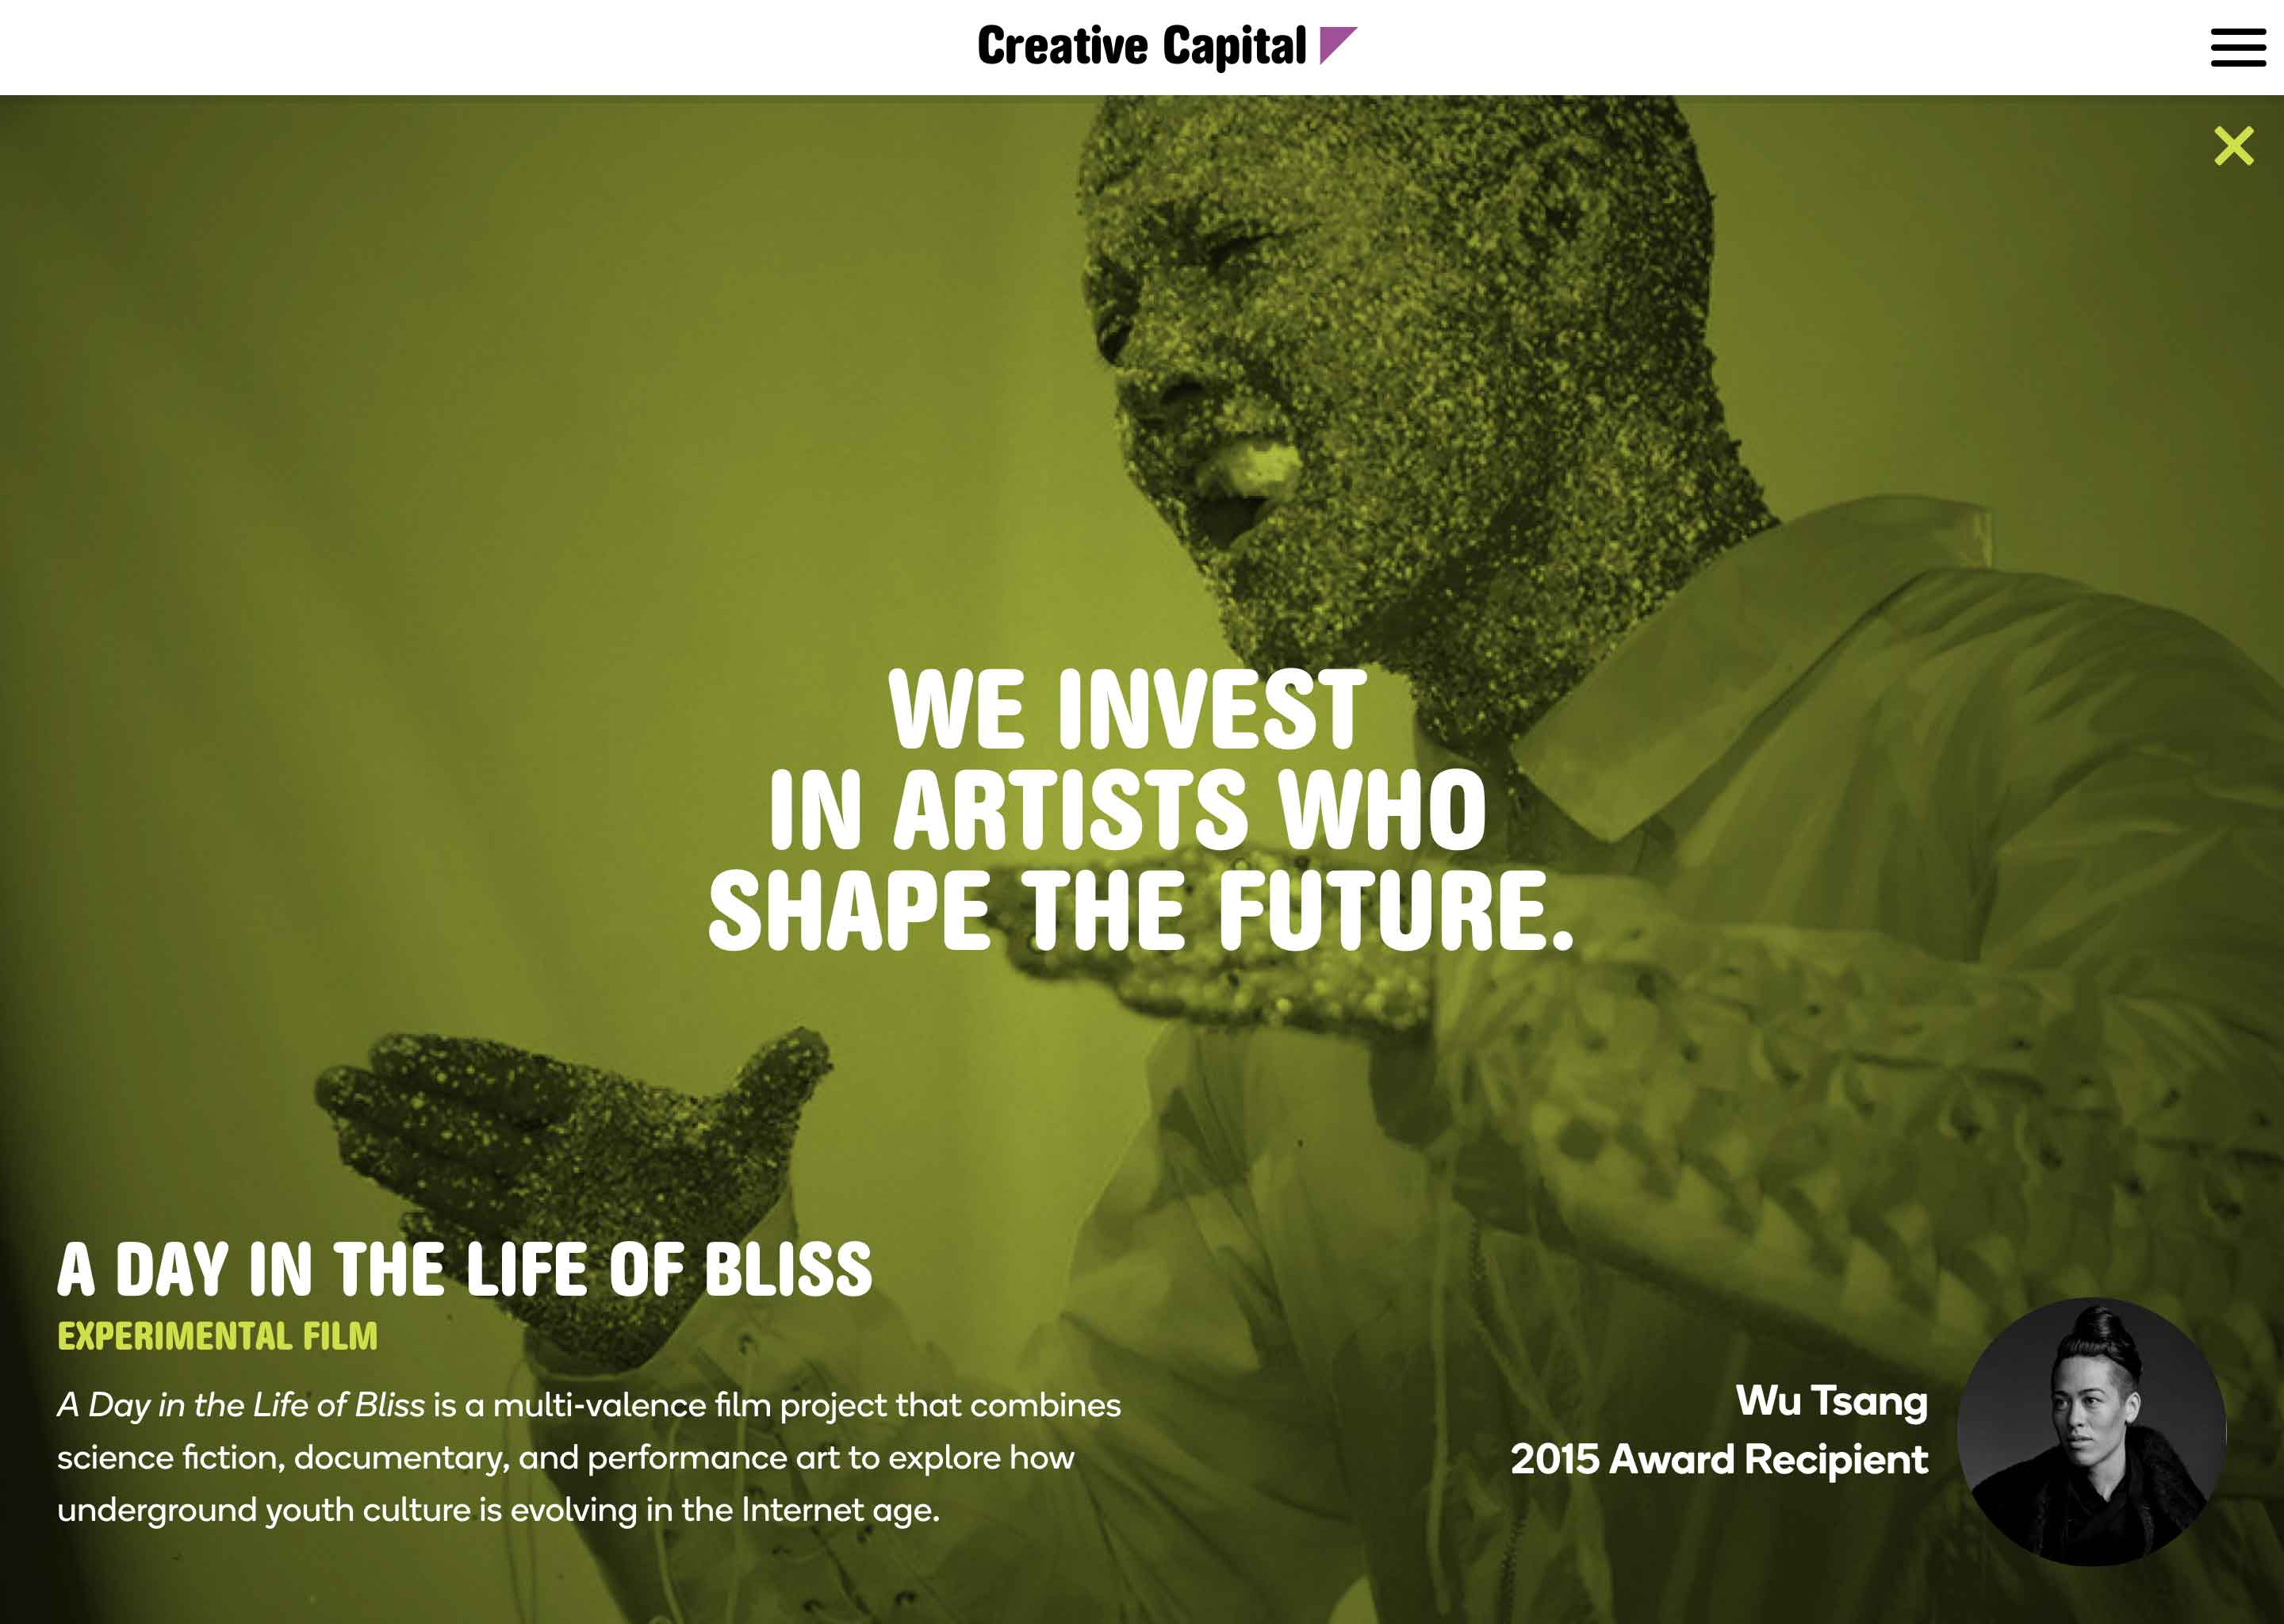 Screenshot of Creative Capital Application microsite